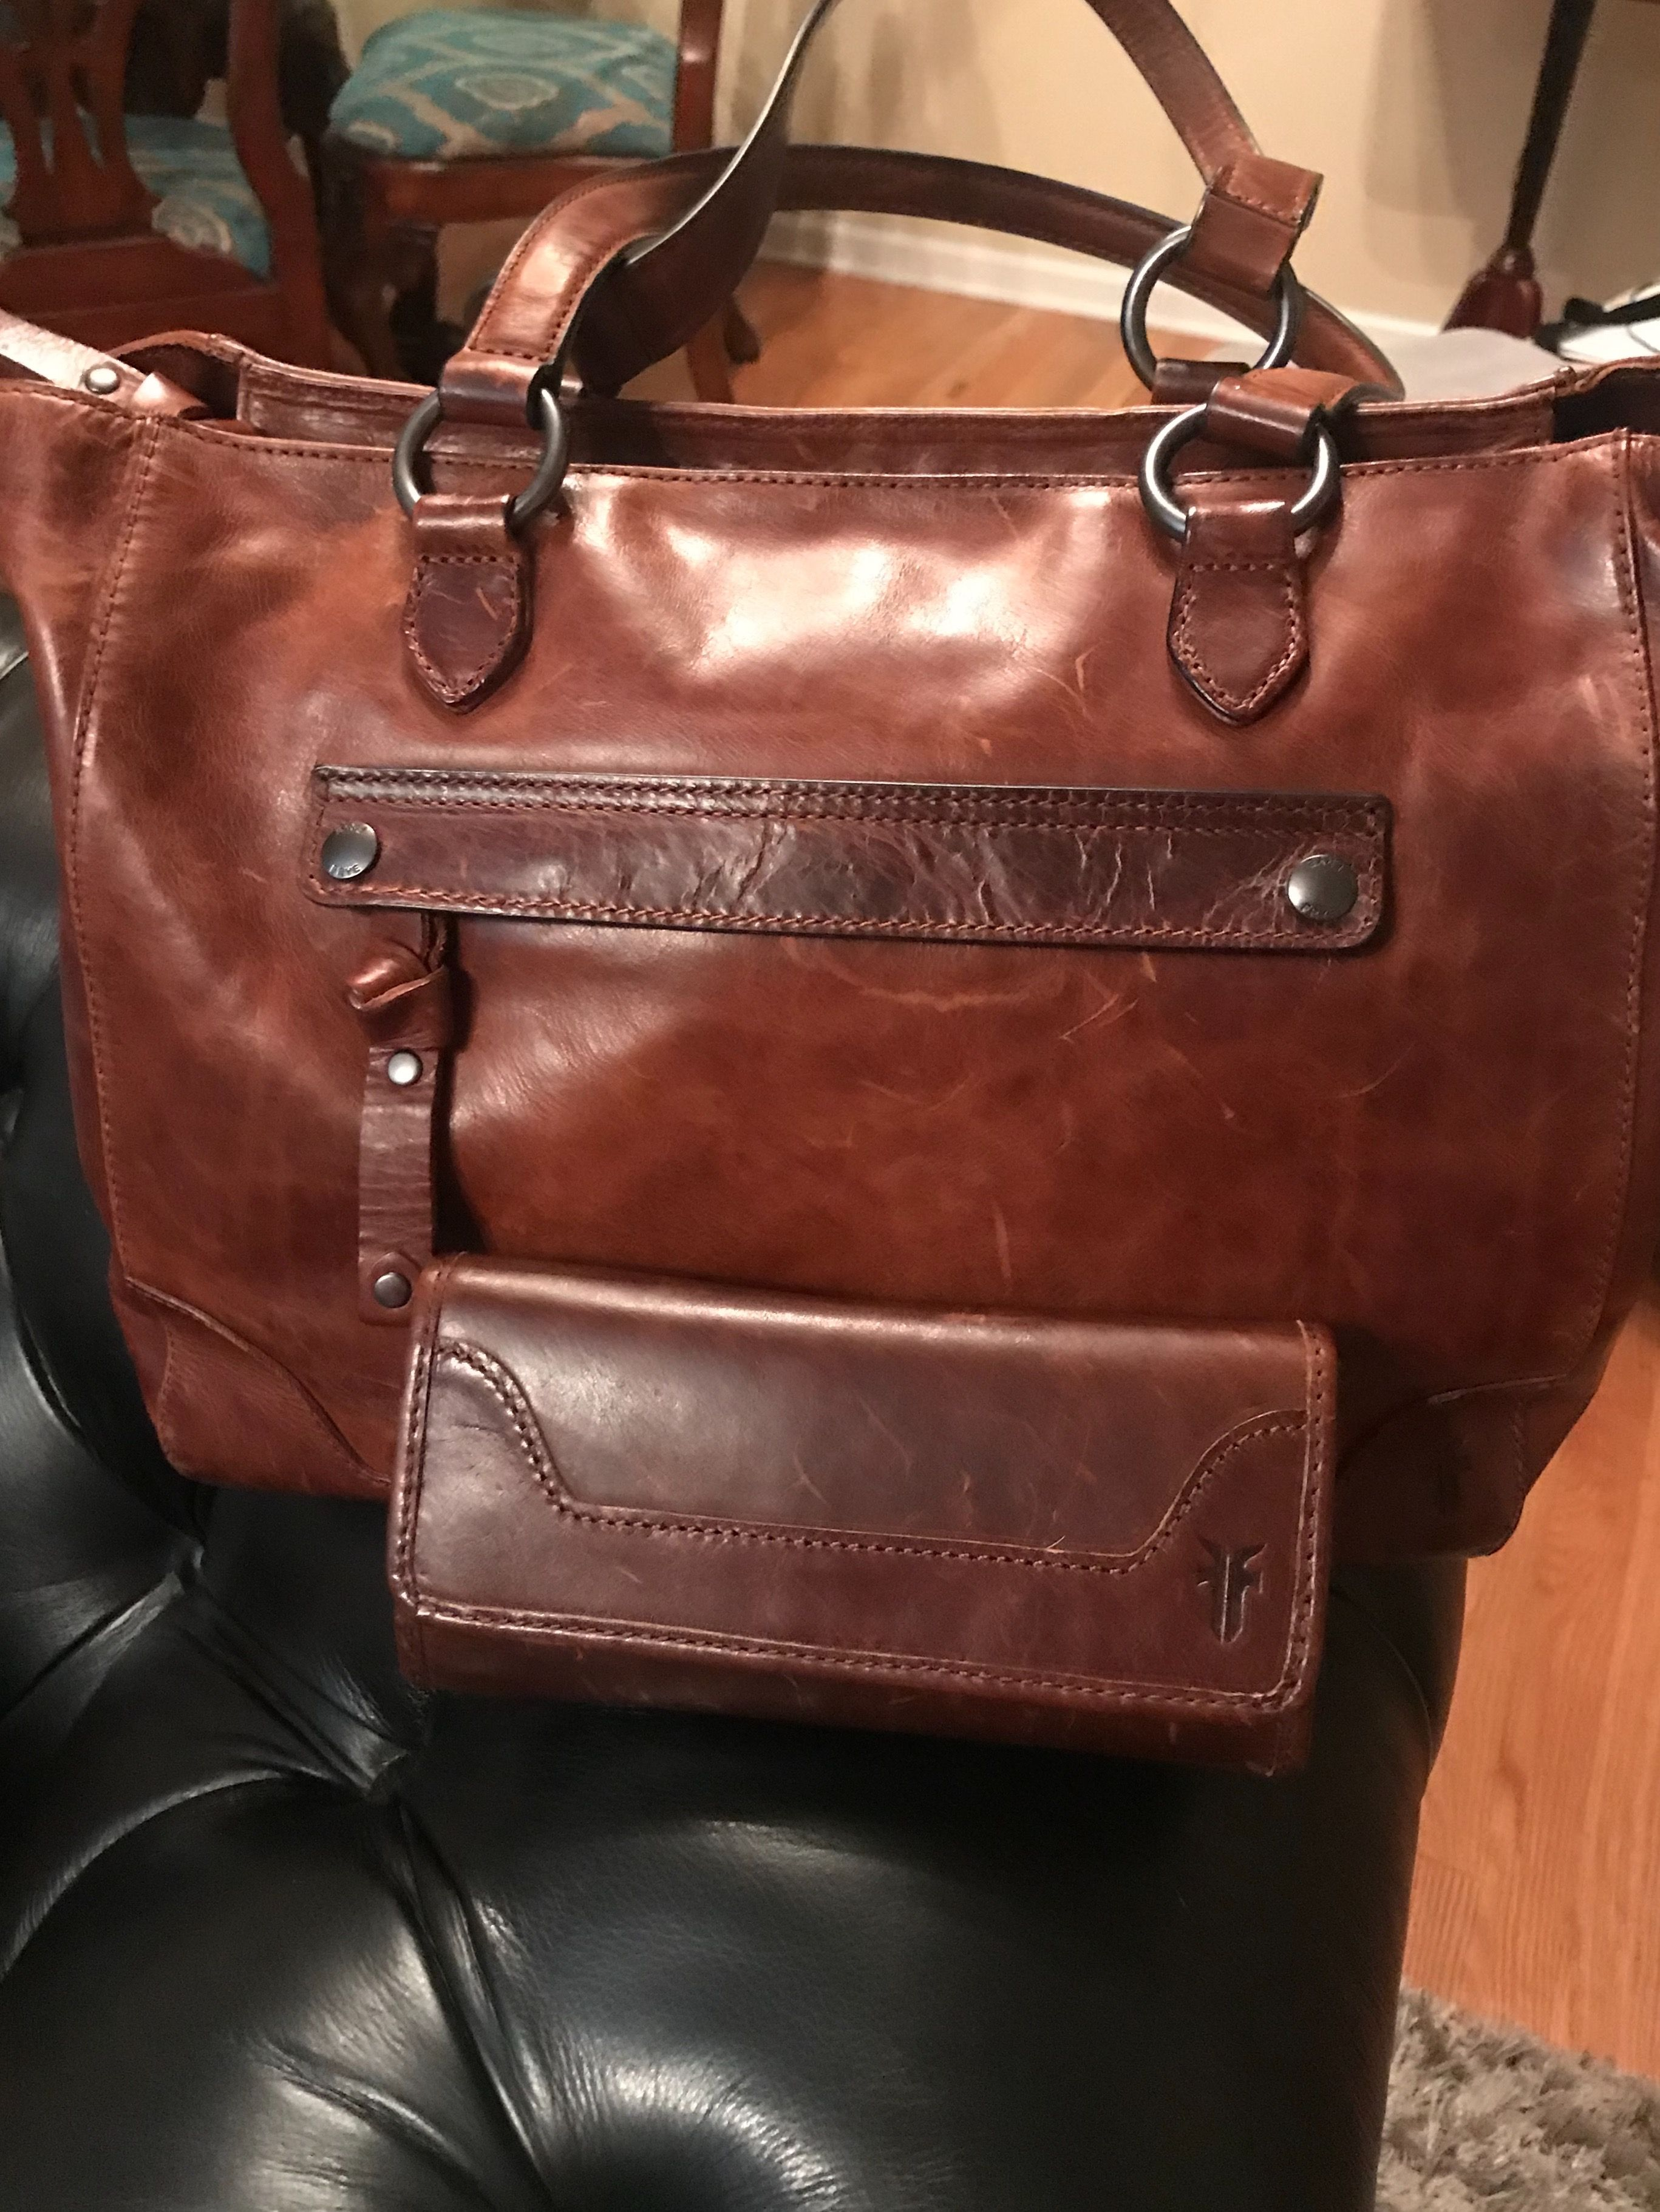 0a6968aa38acc6 Frye (Melissa Zip Tote in Cognac) Judy Curtis | Tory Burch and other ...